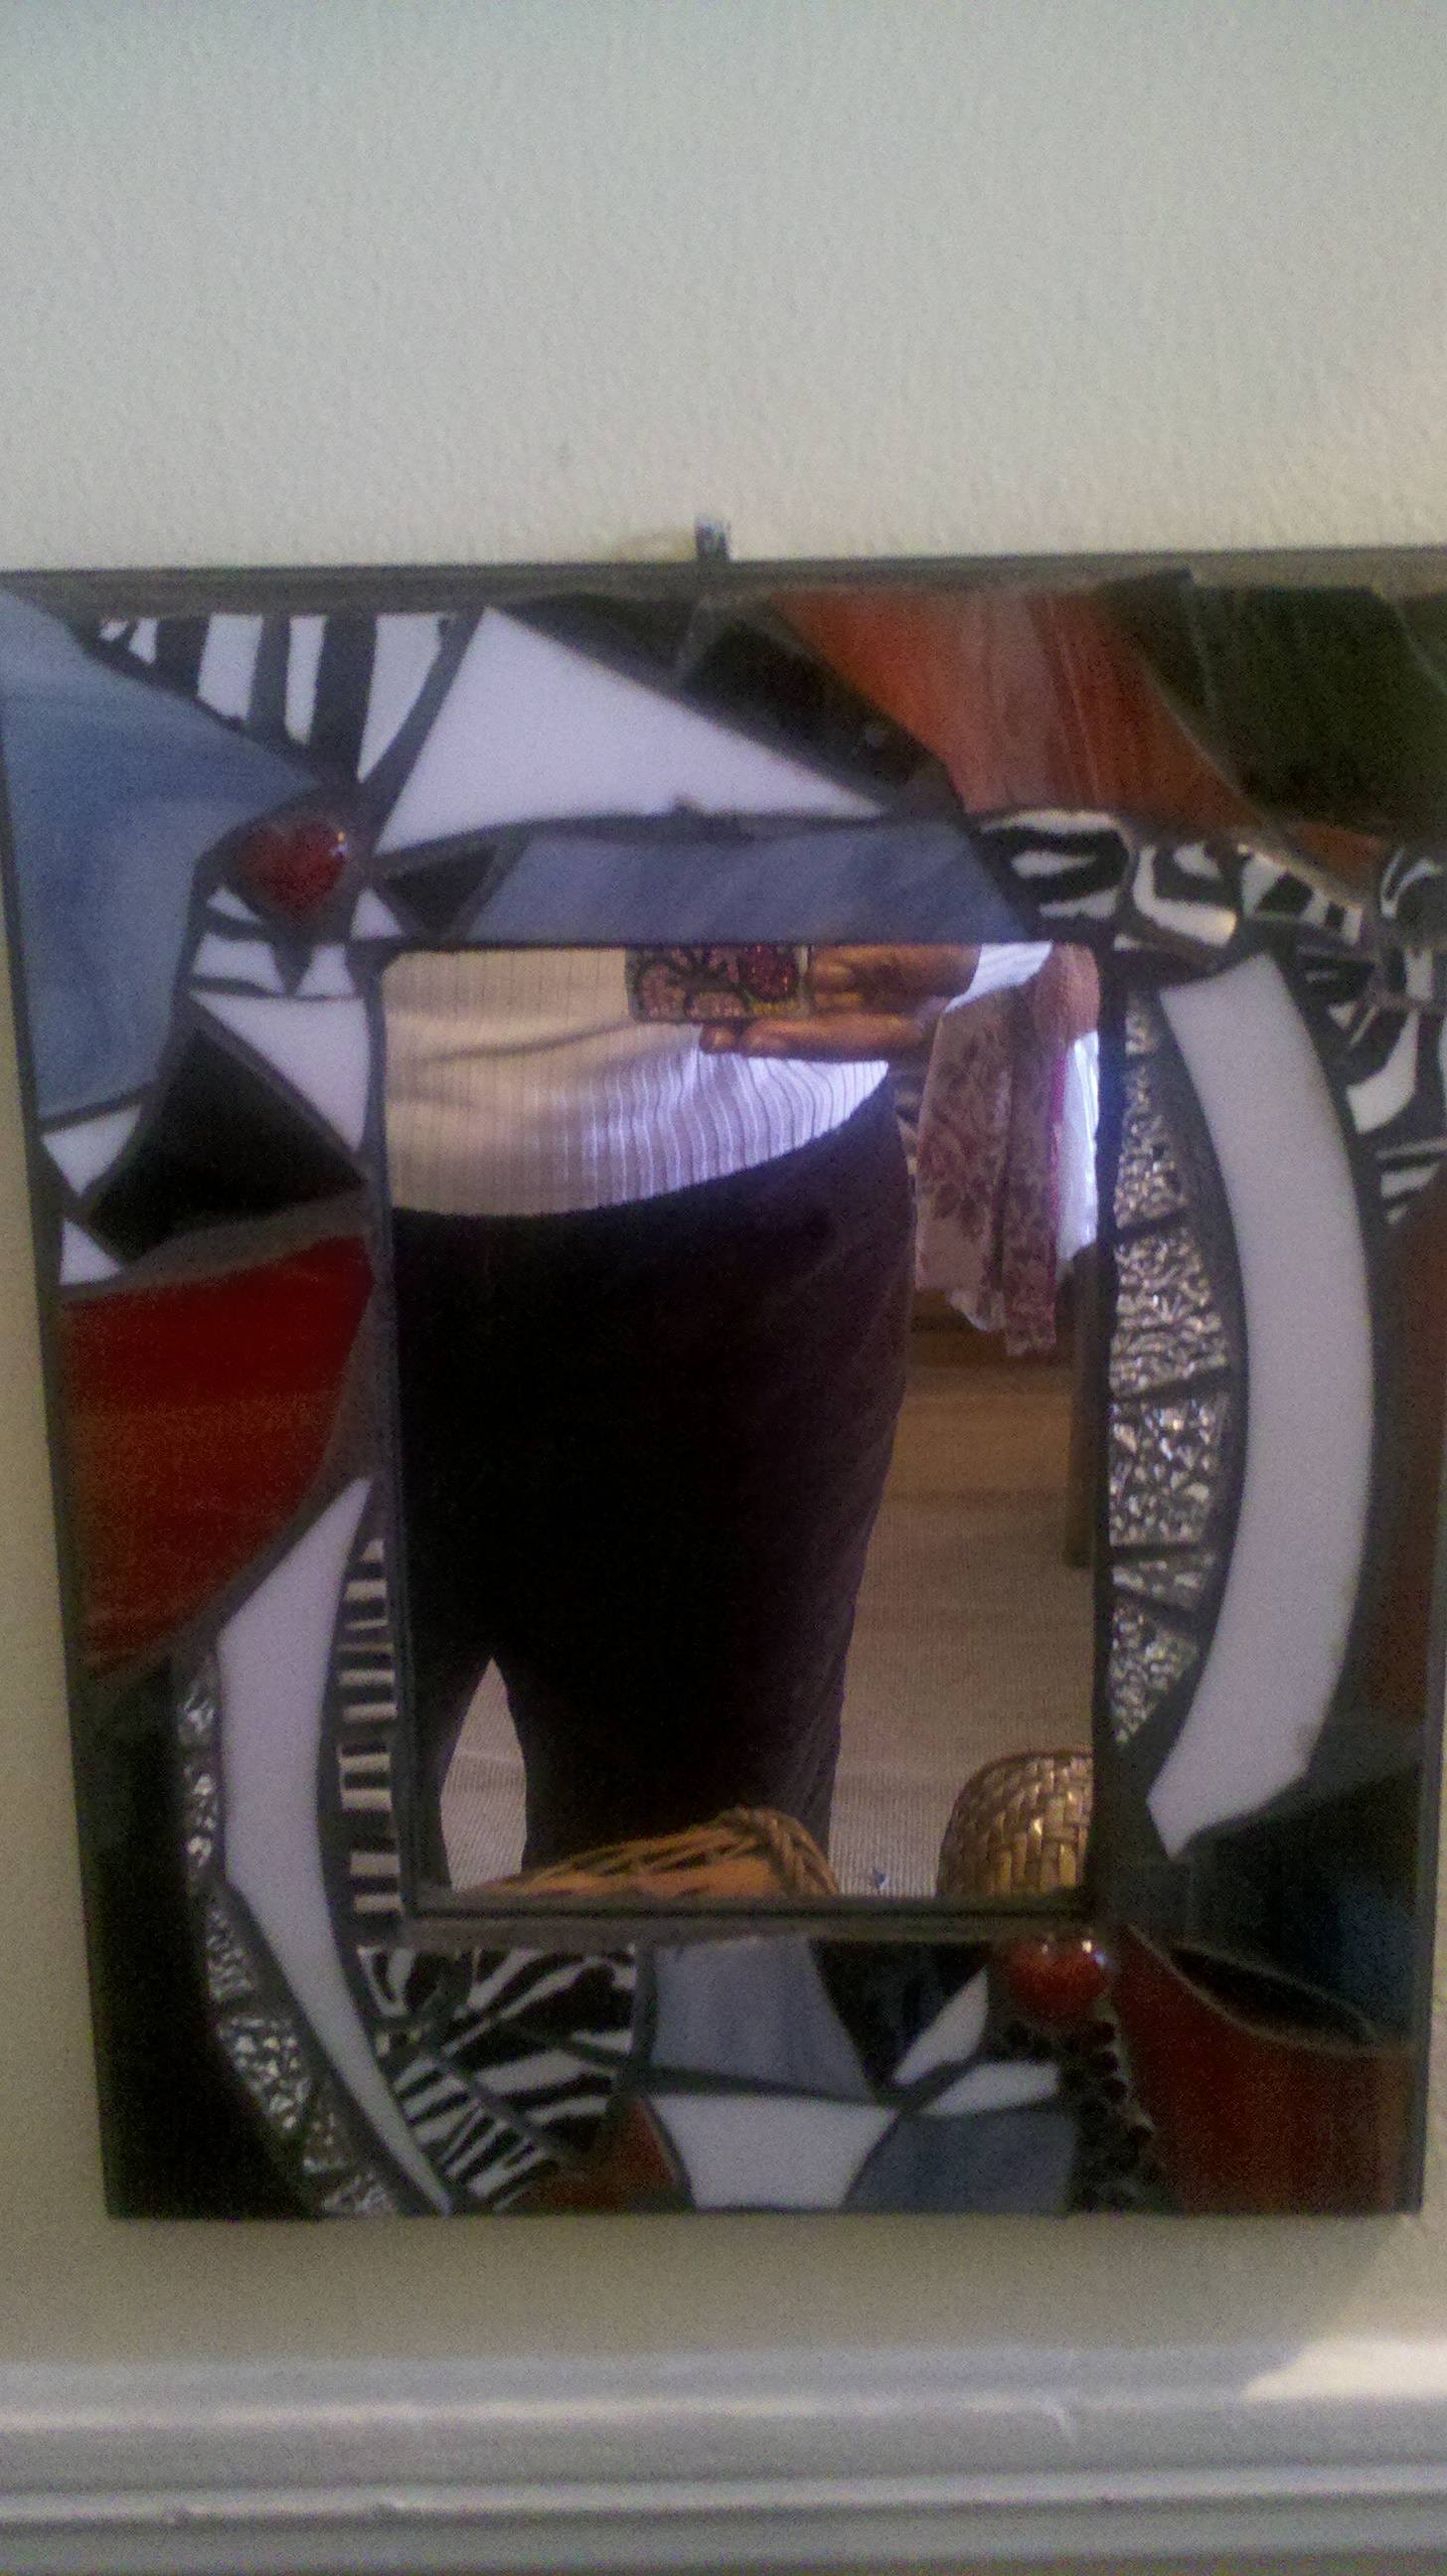 2012 - Mixed Mirror.jpg